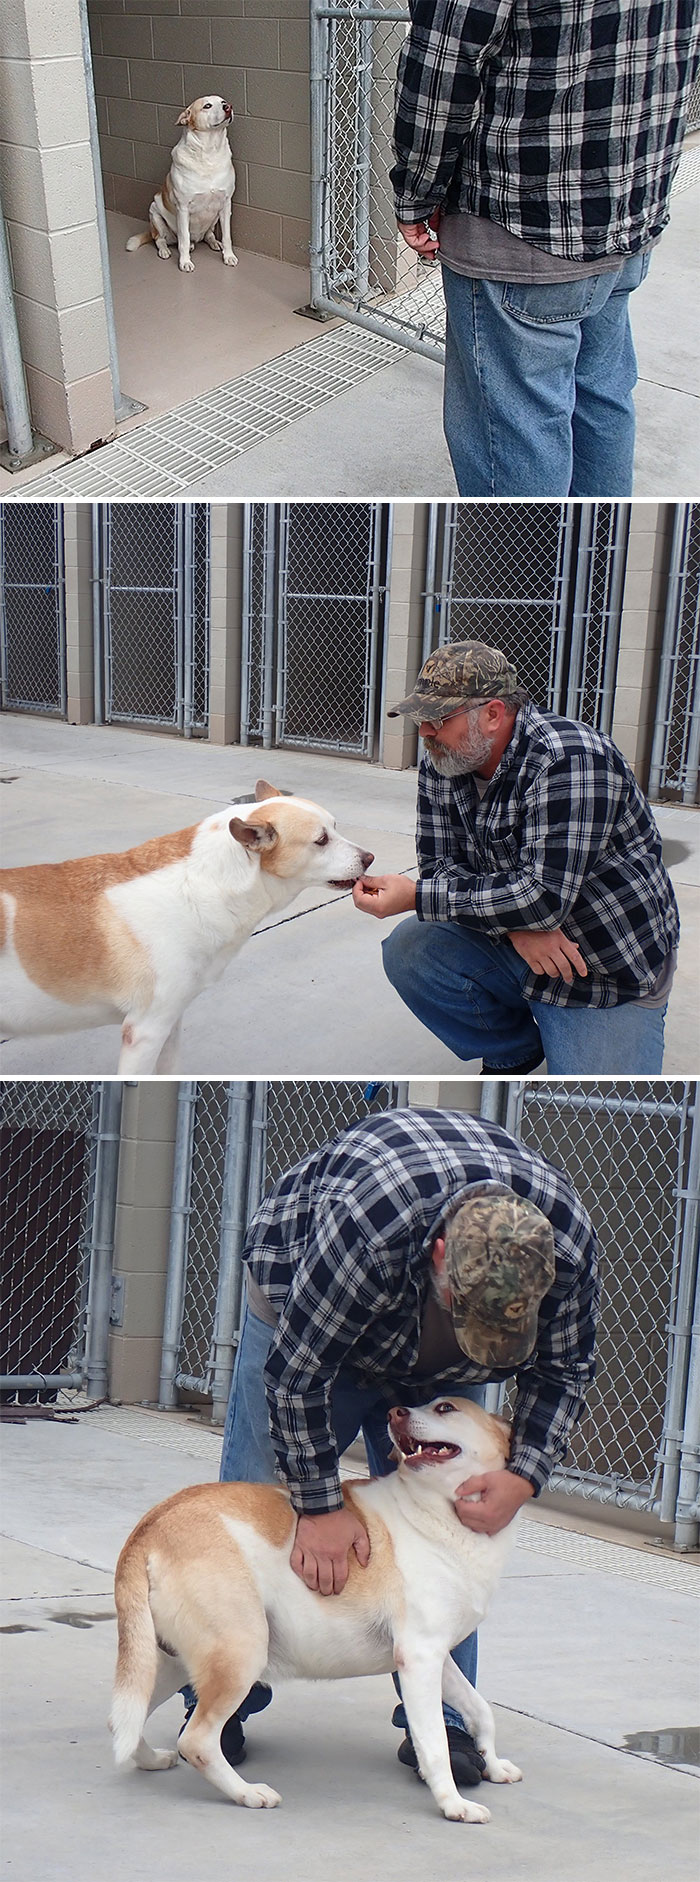 Dog Reunites With Its Owners After Three Years